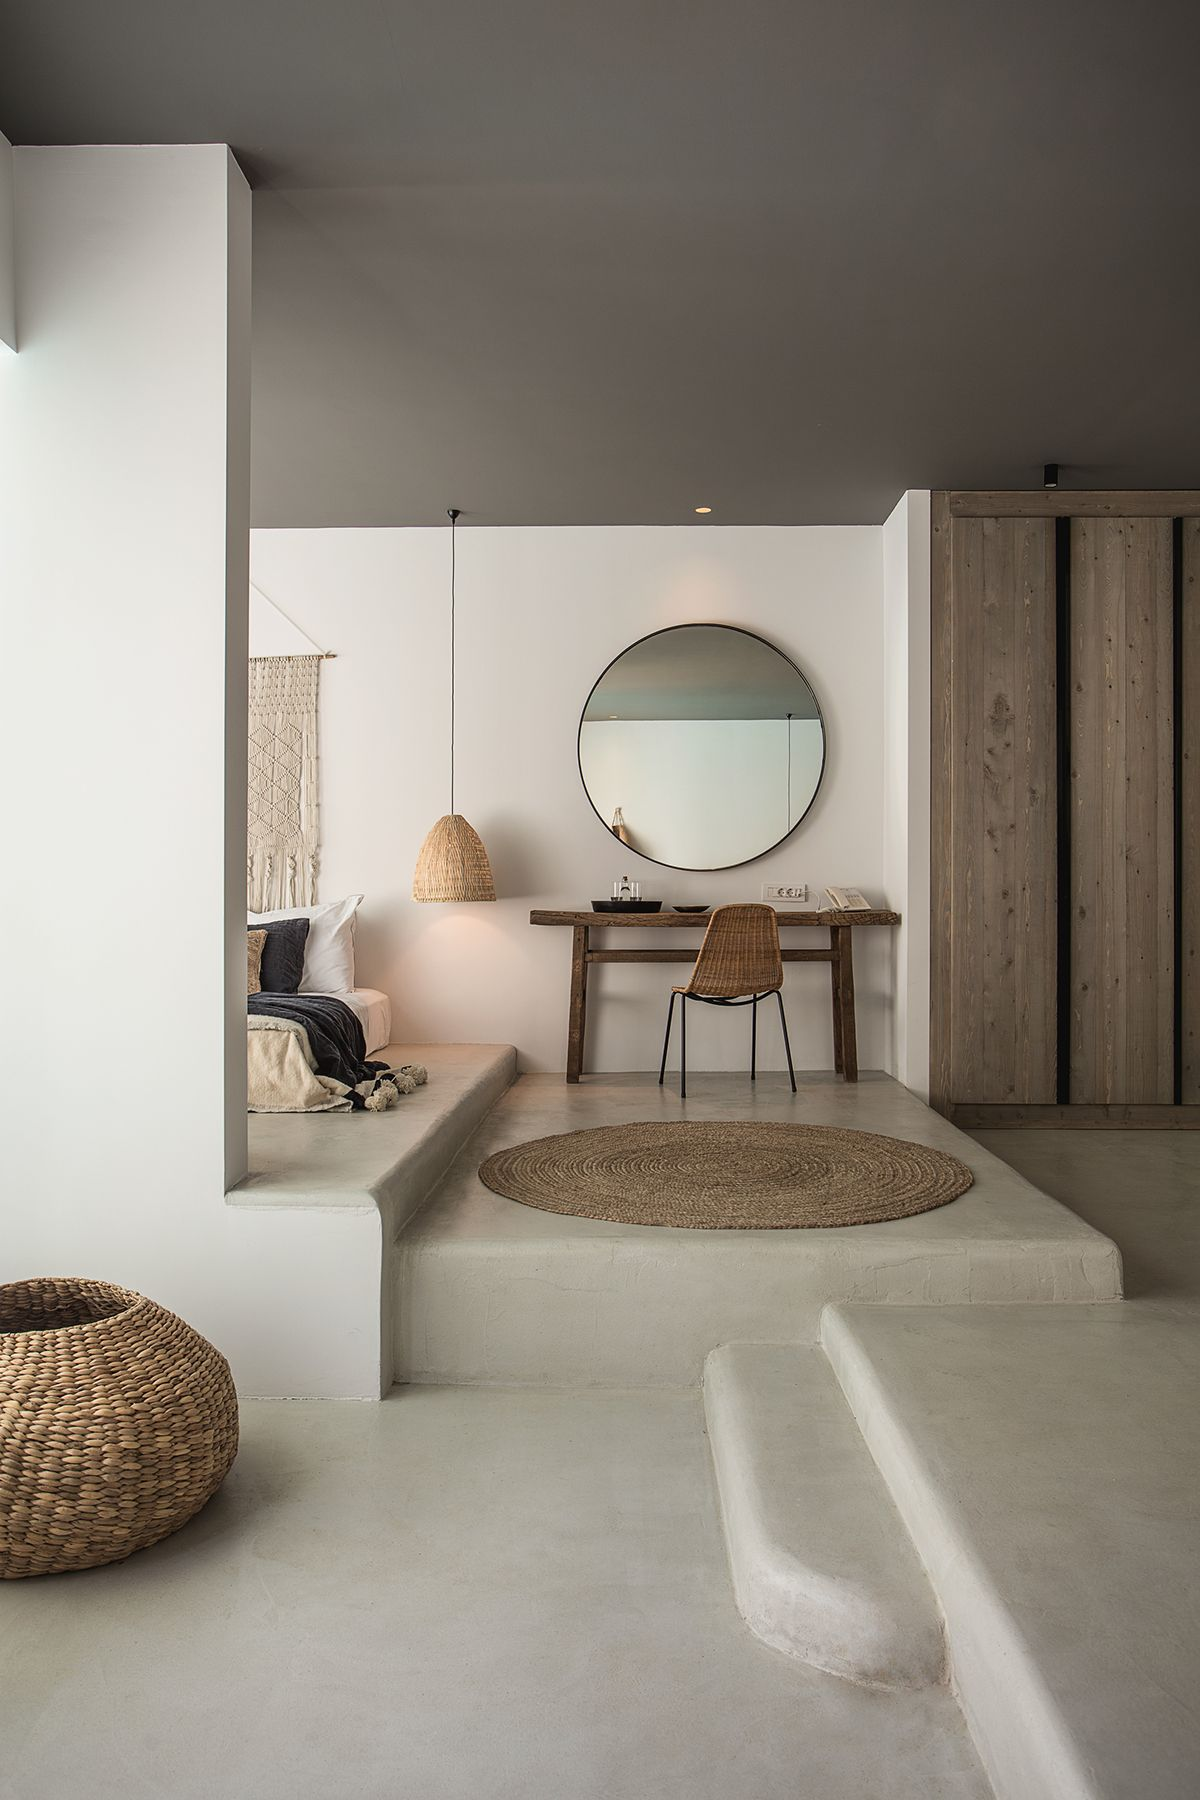 By Annabell Kutucu Michael Schickinger Architecture By Vana - Architecture by design